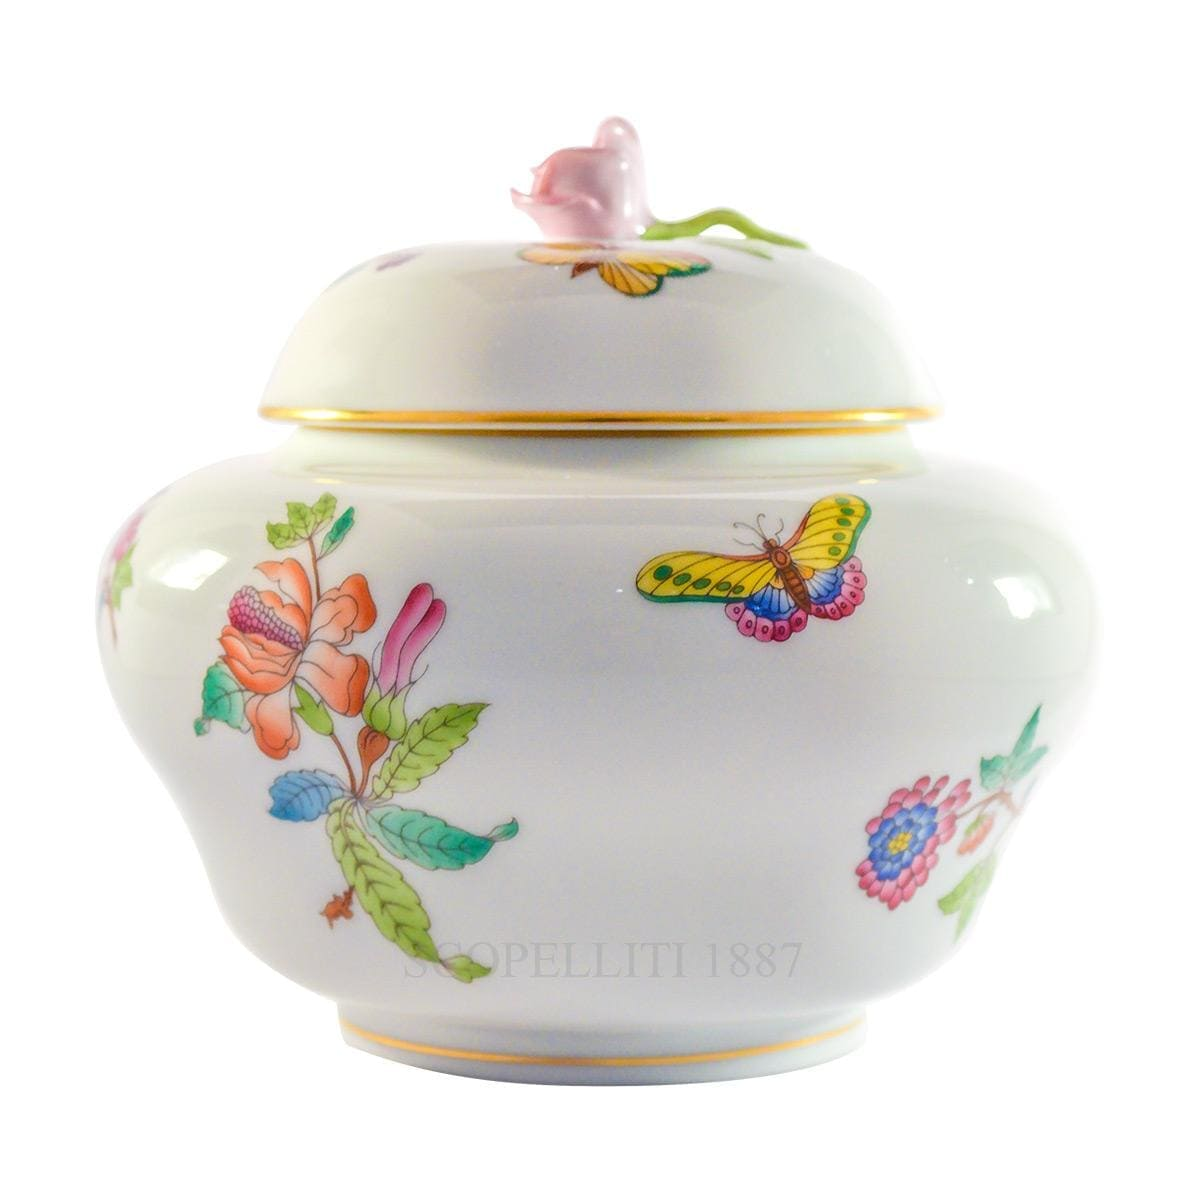 herend porcelain queen victoria ginger jar with rose